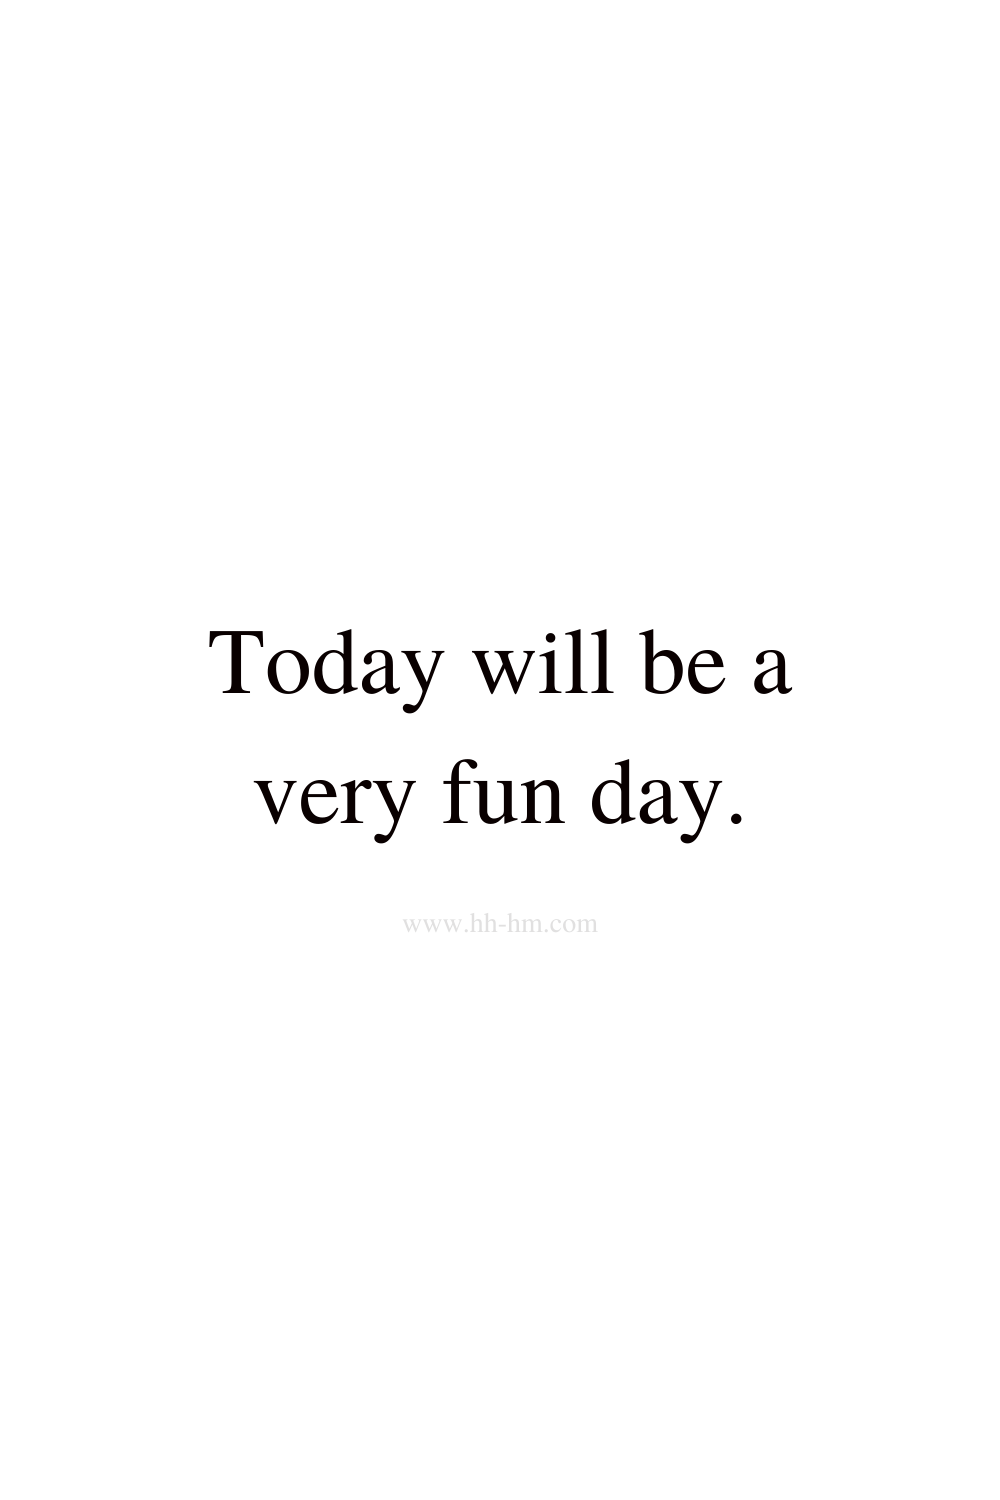 Today will be a very fun day - morning affirmations